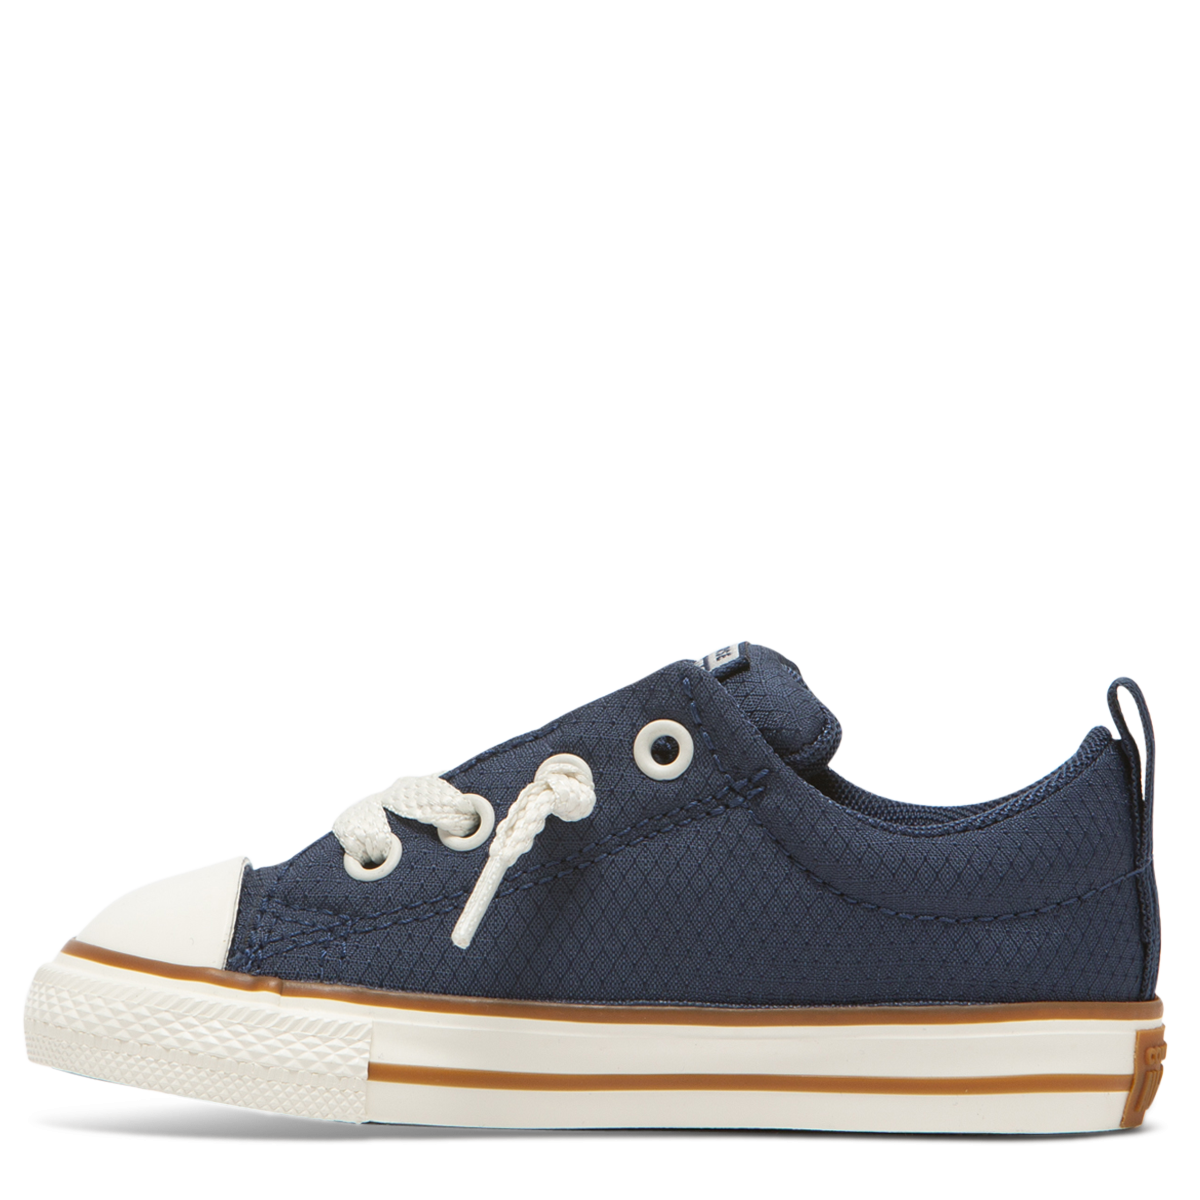 fee7a2e4cd2cc2 Converse Chuck Taylor All Star Street Pinstripe Toddler Low Top Navy 763525C